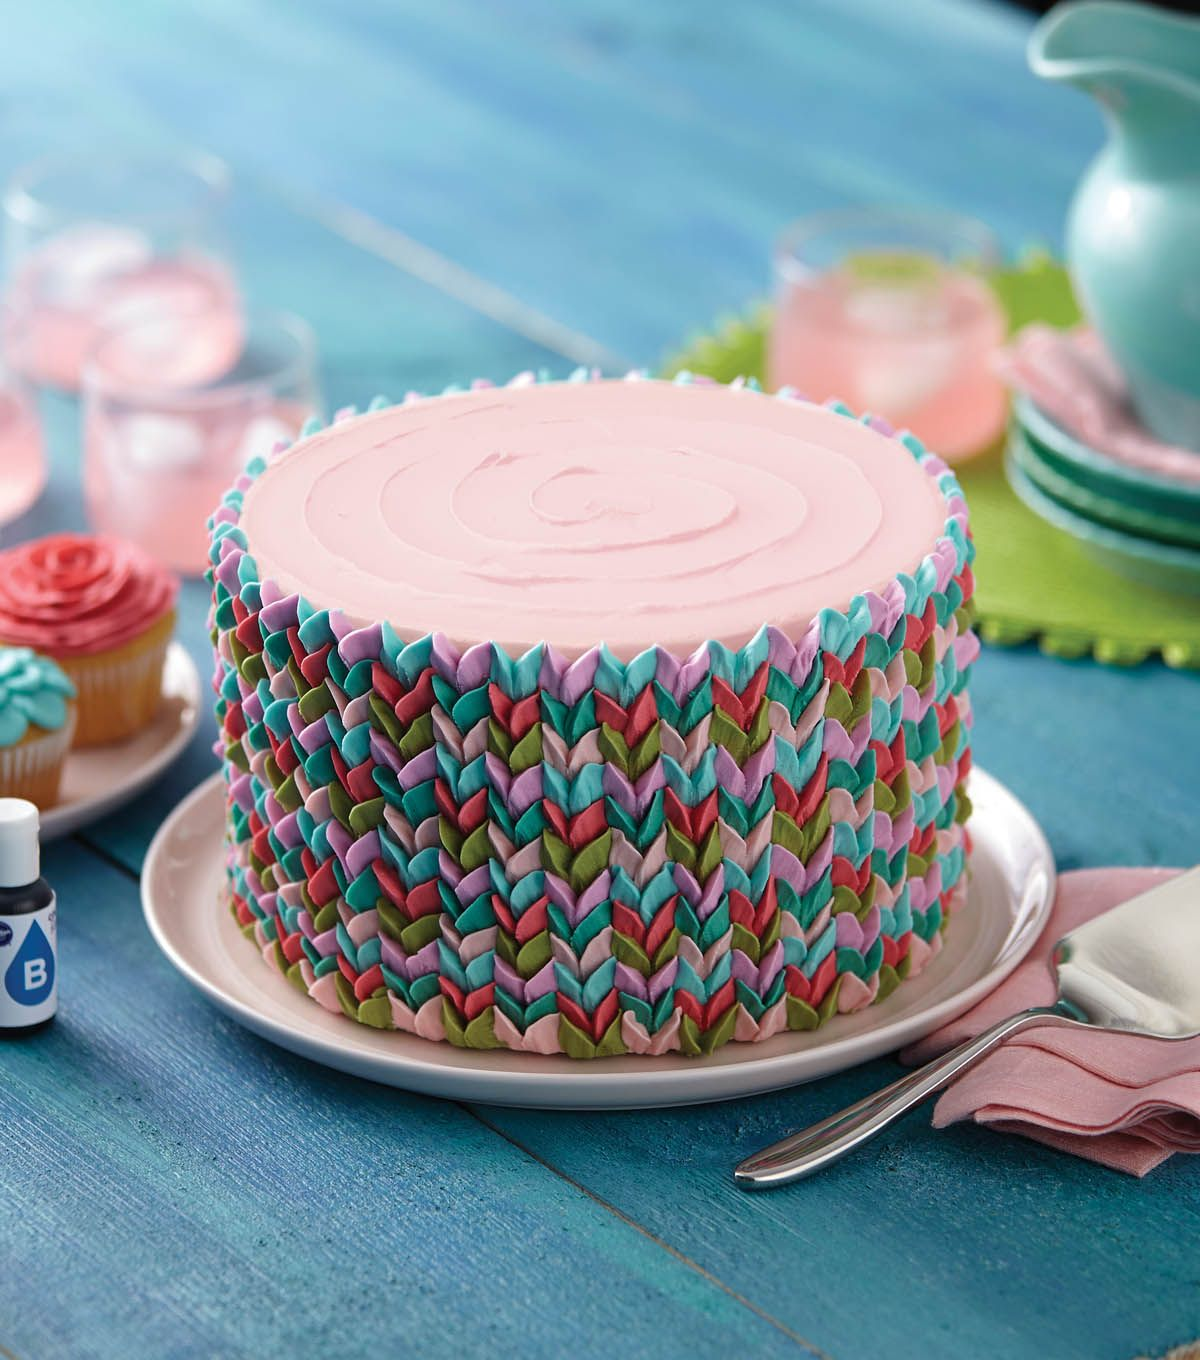 Learn How To Make This Beautiful And Bright Cake From